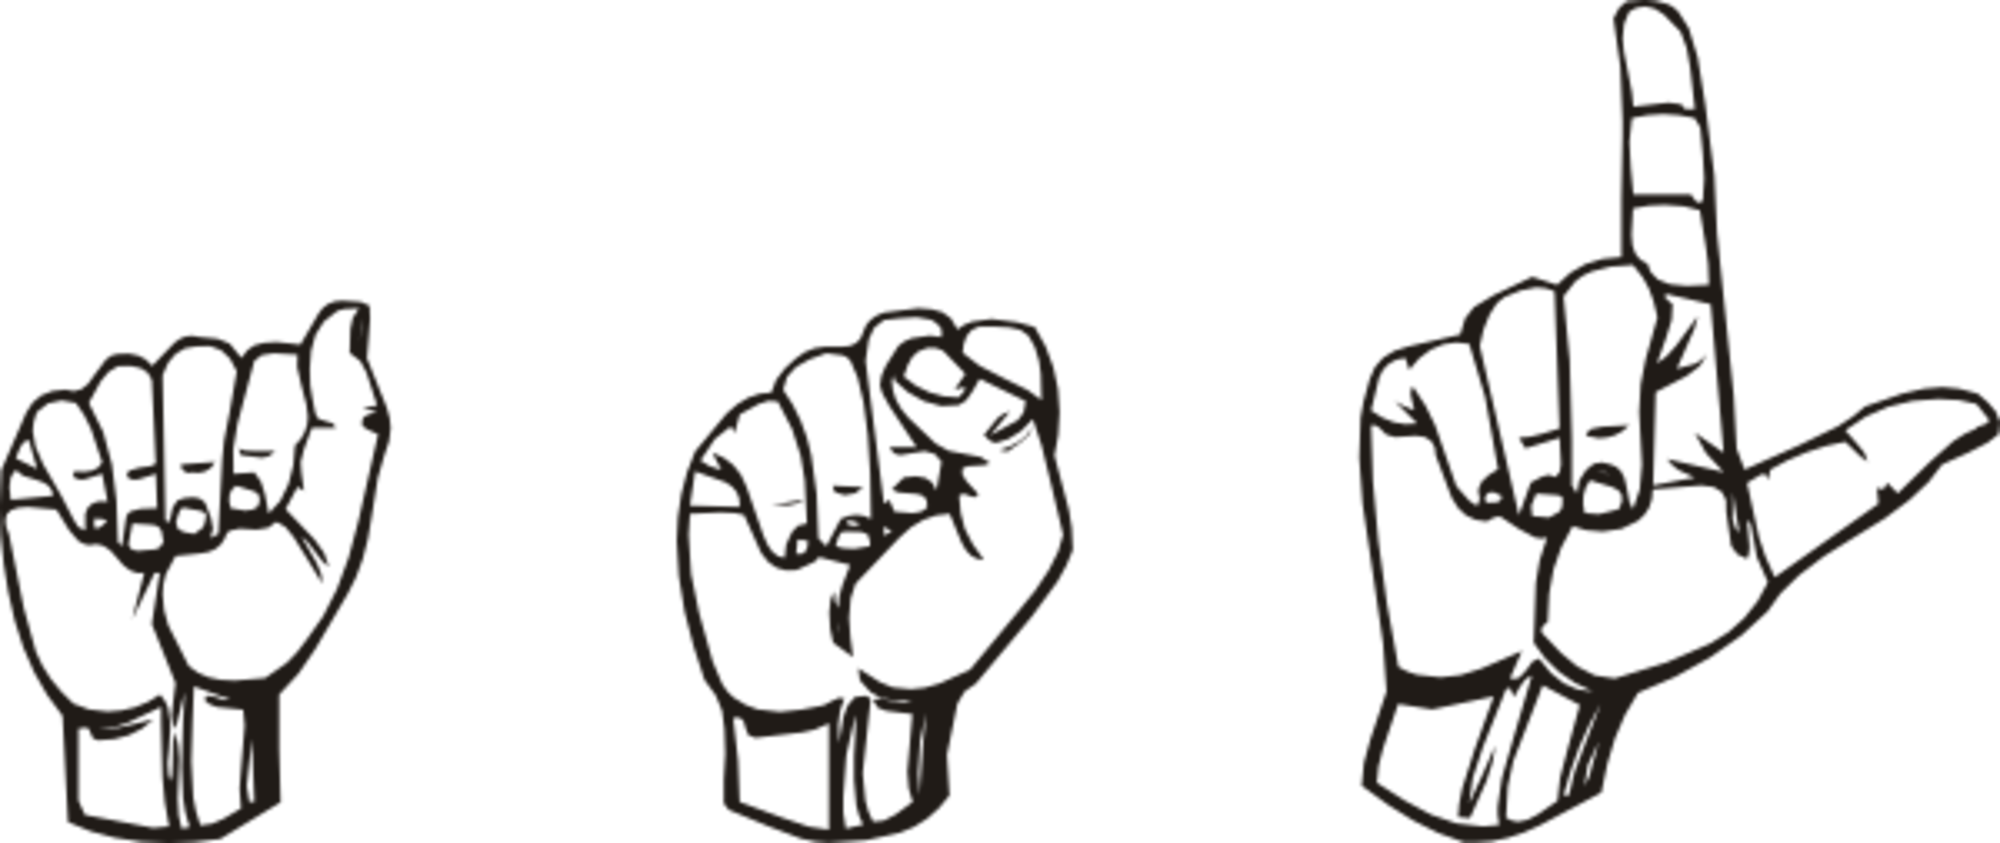 Clipart hand signing. Thinking about learning asl